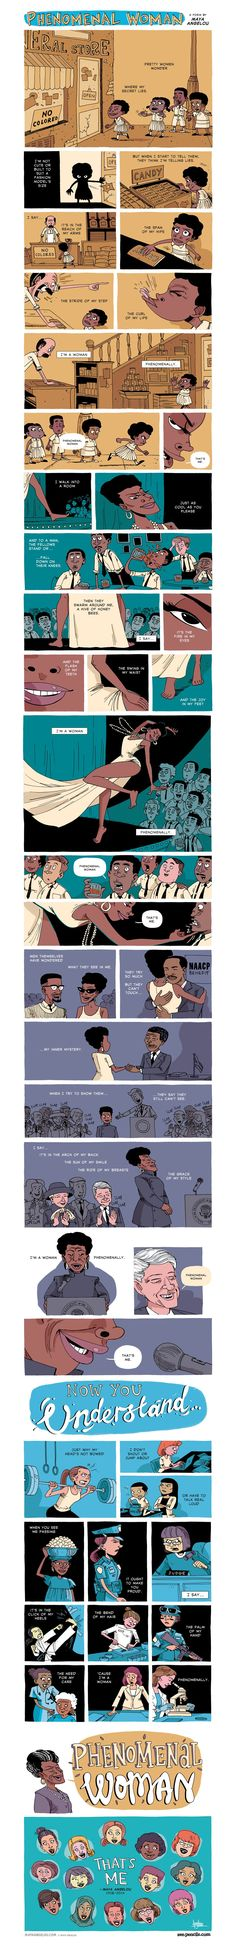 MAYA ANGELOU: Phenomenal Woman comic by Zen Pencils